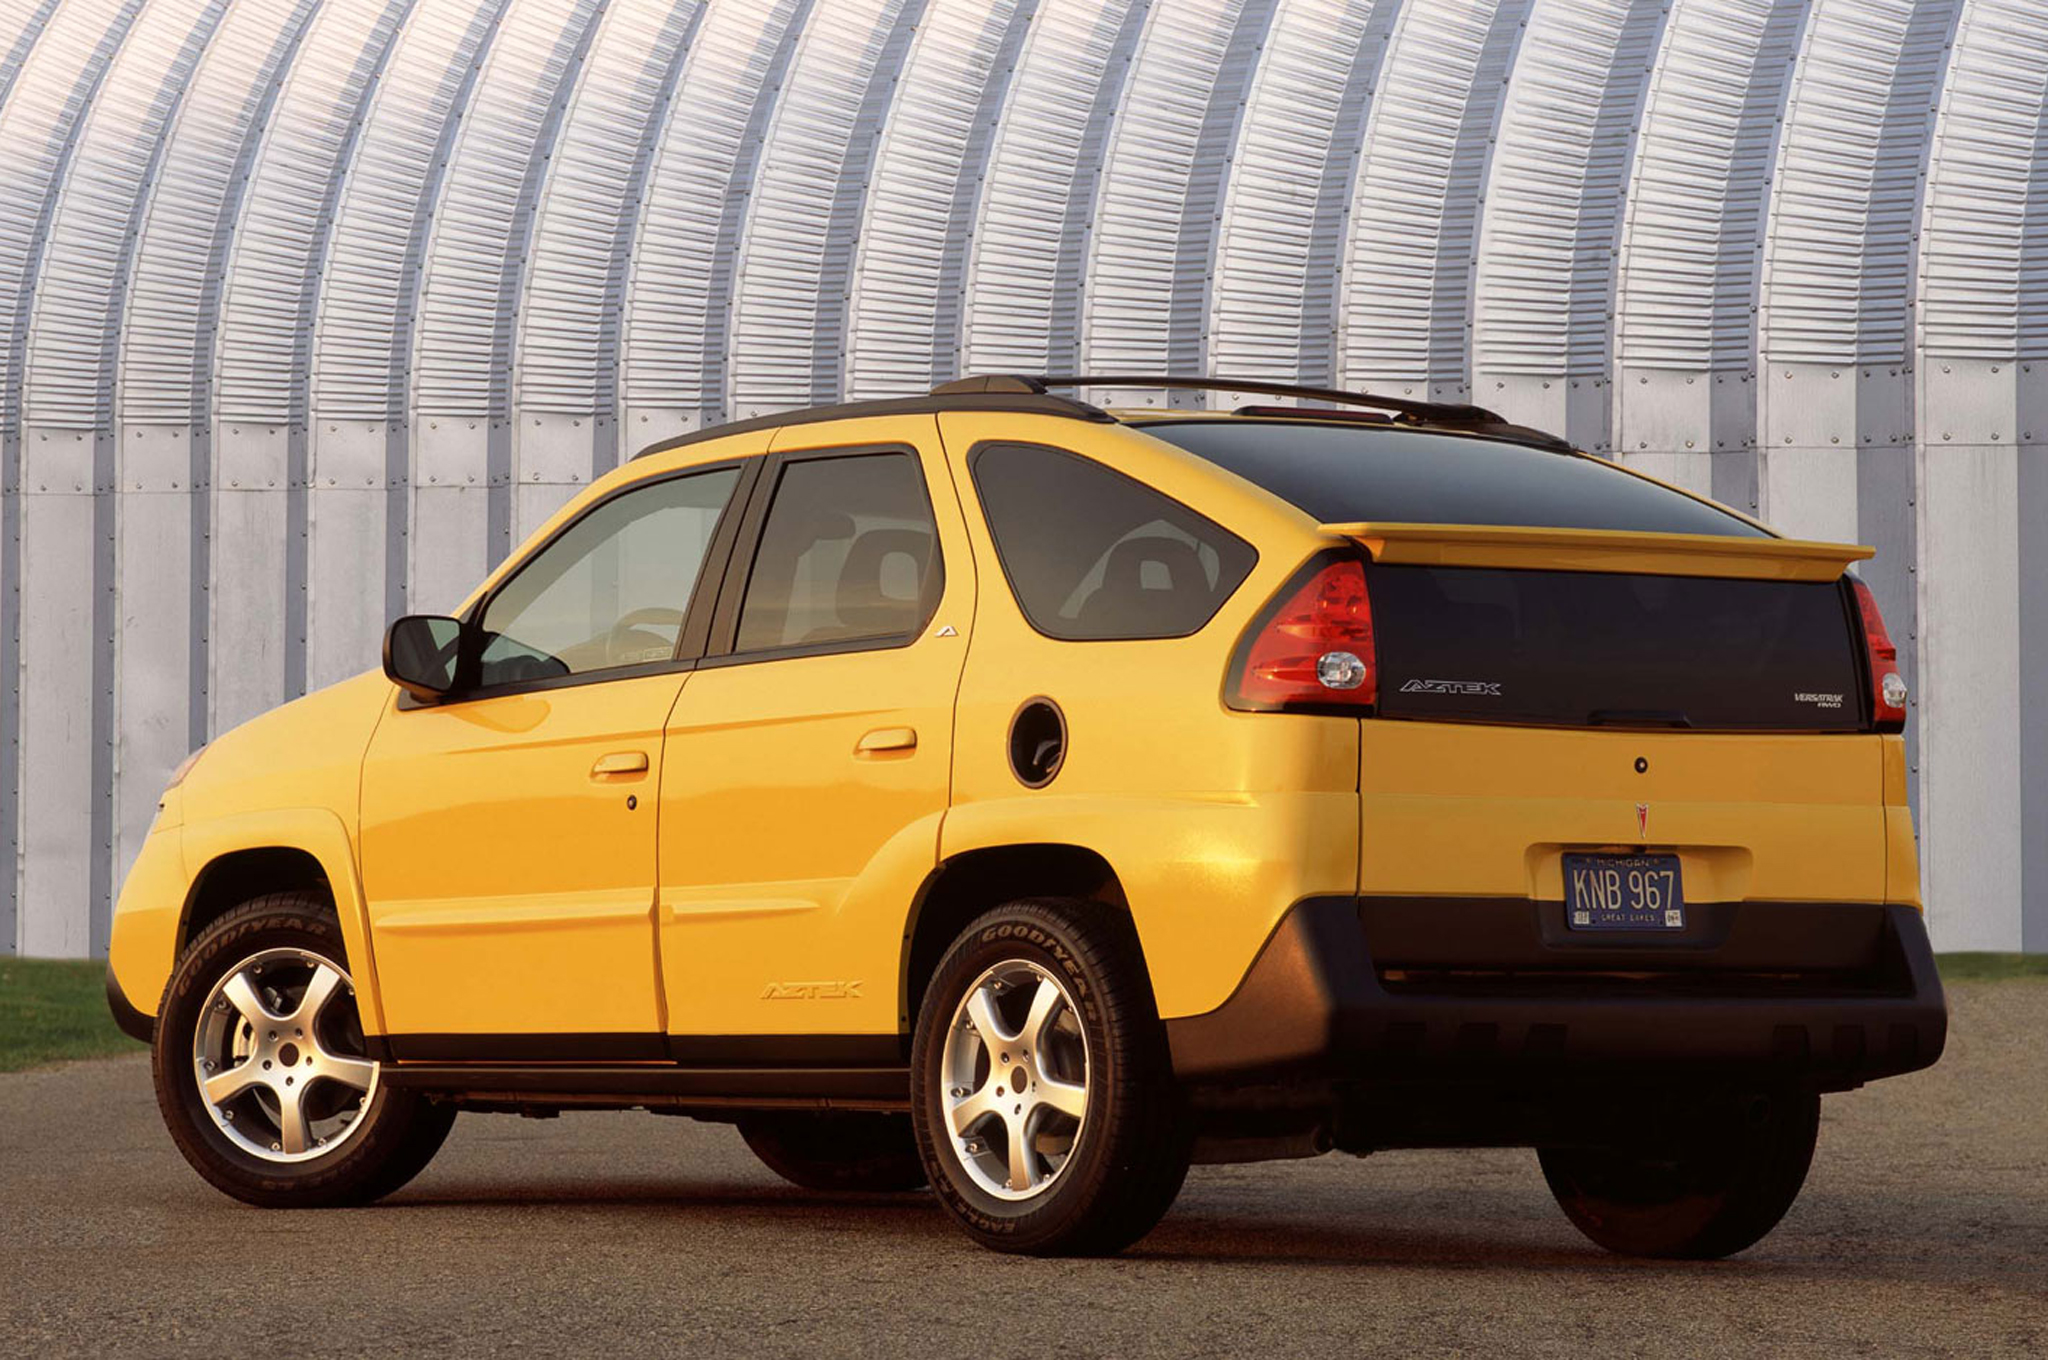 2017 Pontiac Aztek photo - 2